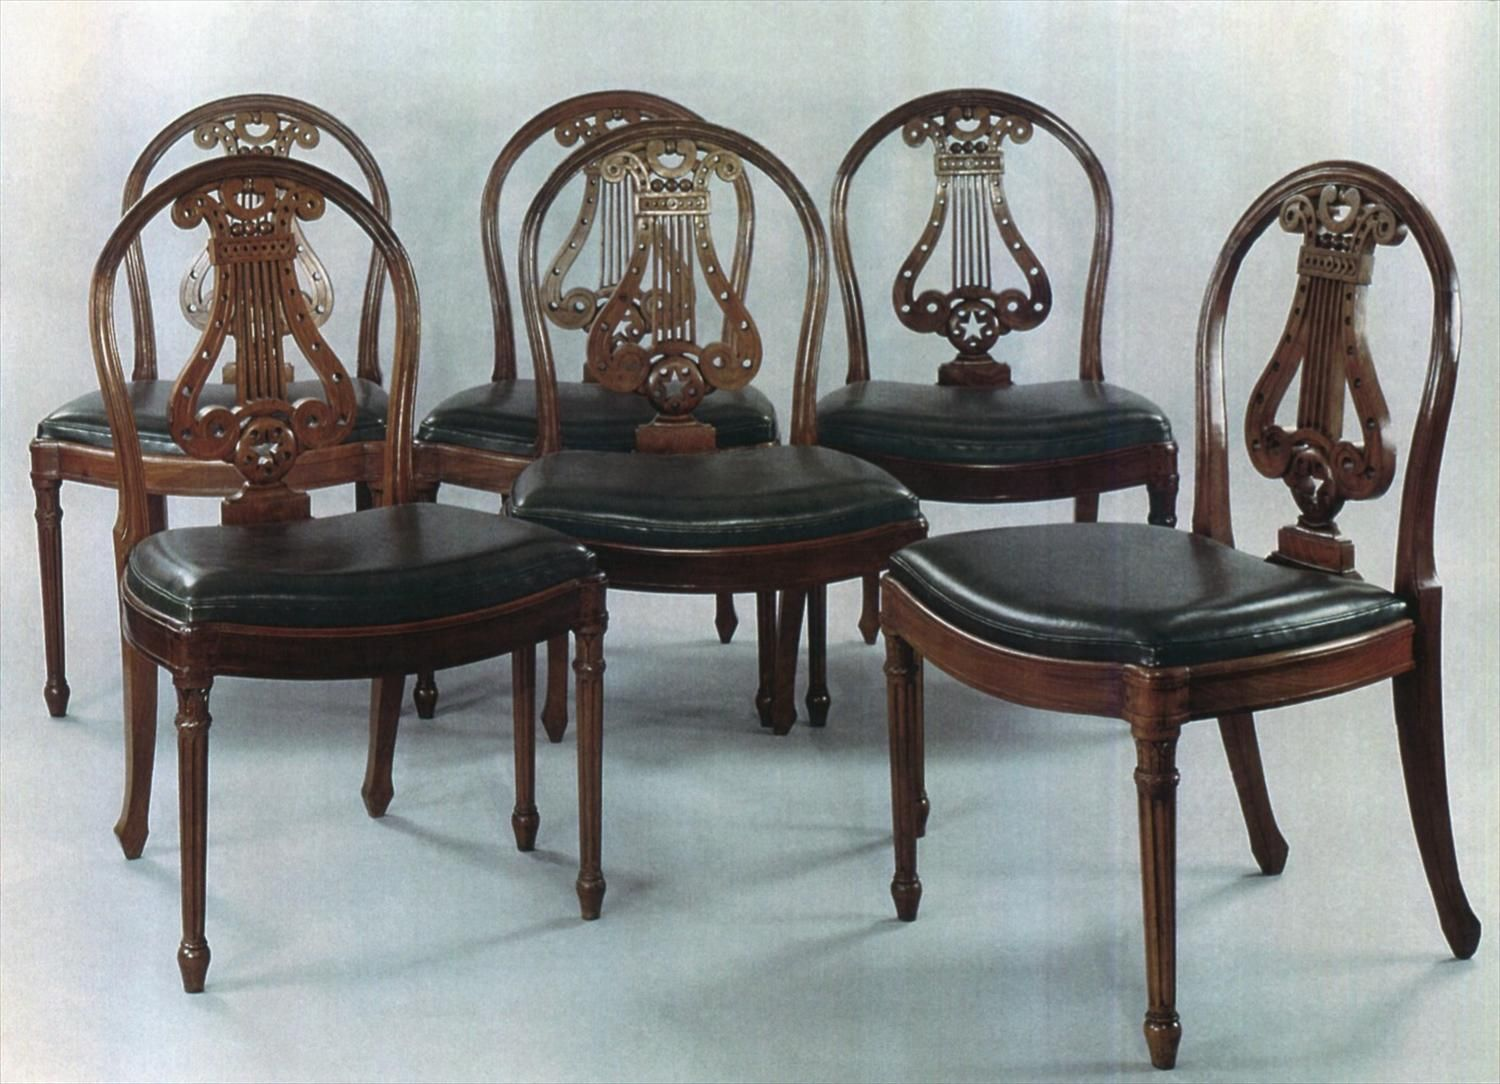 date unspecified A SET OF SIX CARVED MAHOGANY CHAIRS. OPEN BACK IN THE FORM  OF A LYRE. RAISED ON FLUTTED TAPERING LEGS WITH SCULPTED LOTUS FLOWERS. - Date Unspecified A SET OF SIX CARVED MAHOGANY CHAIRS. OPEN BACK IN